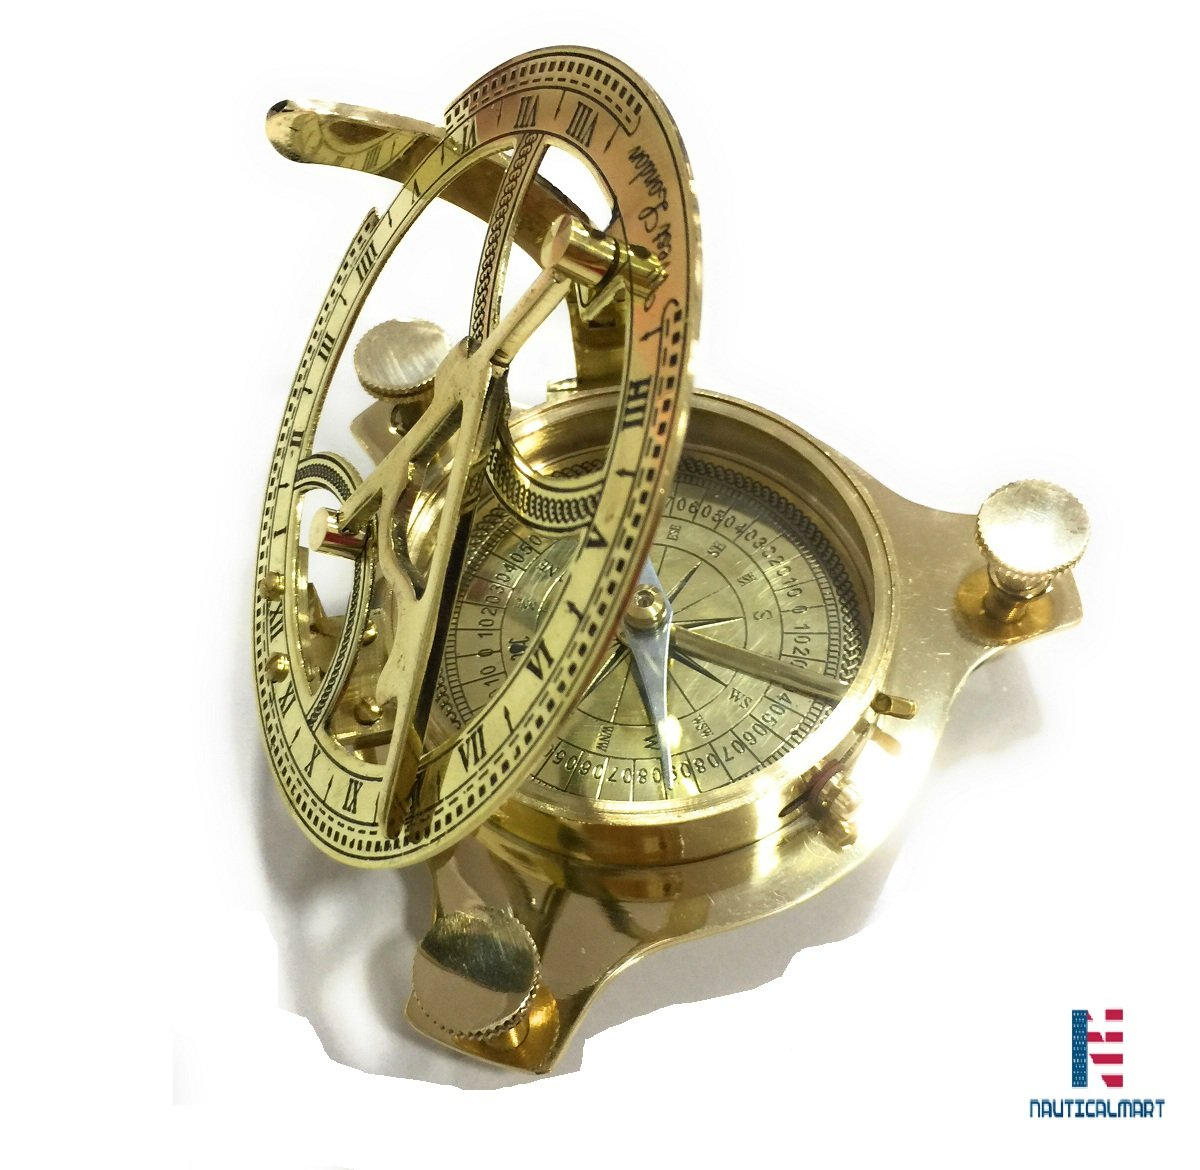 NM034809A Brass Sundial Compass 3.5'' - Case Pack of 16 by NAUTICALMART